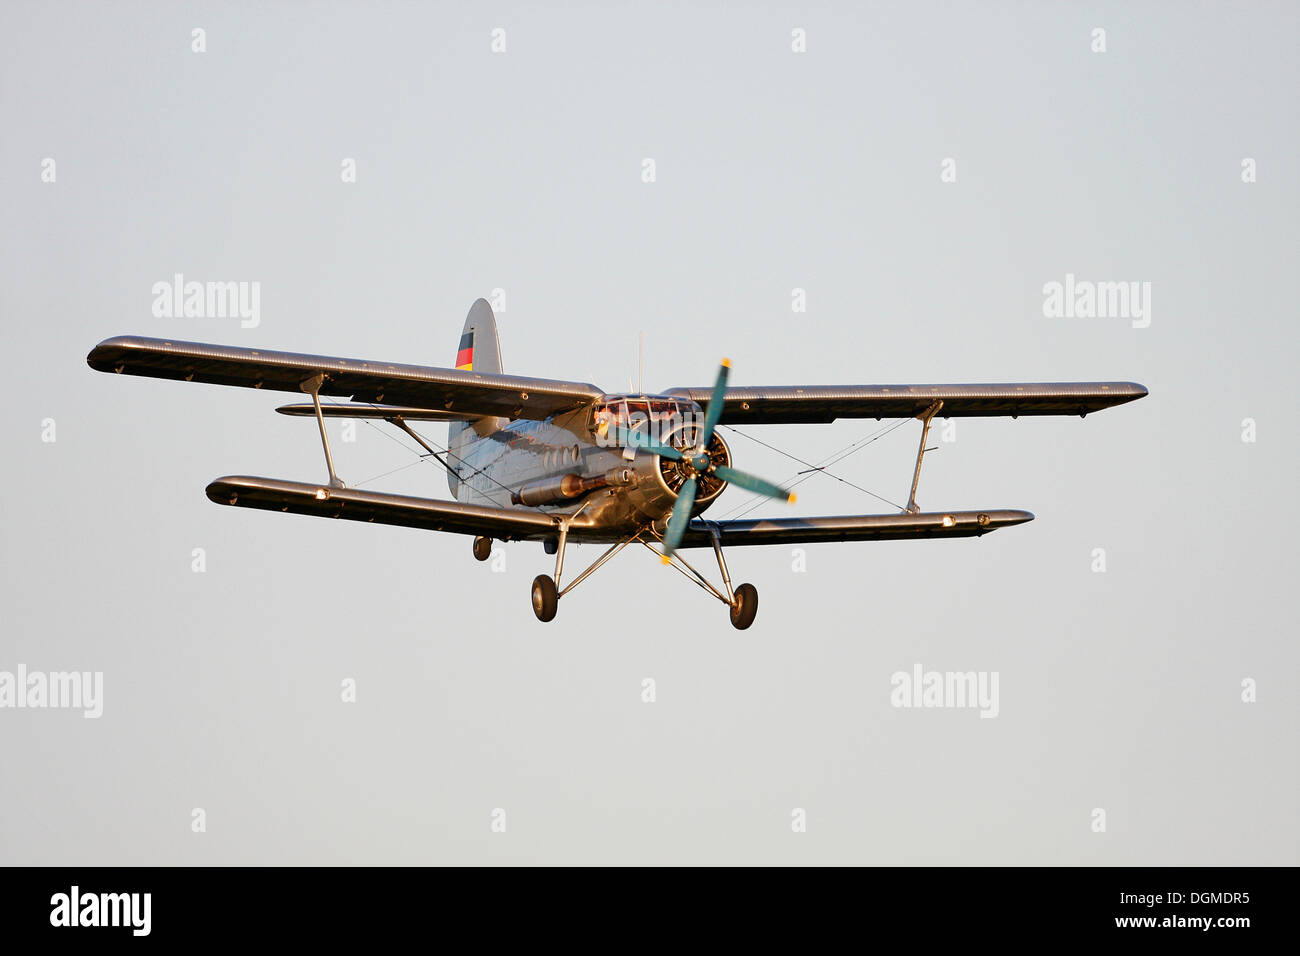 Vintage aircraft, Antonov AN-2, the largest single engine biplane in the world, Breitscheid Airshow 2010, Hesse - Stock Image